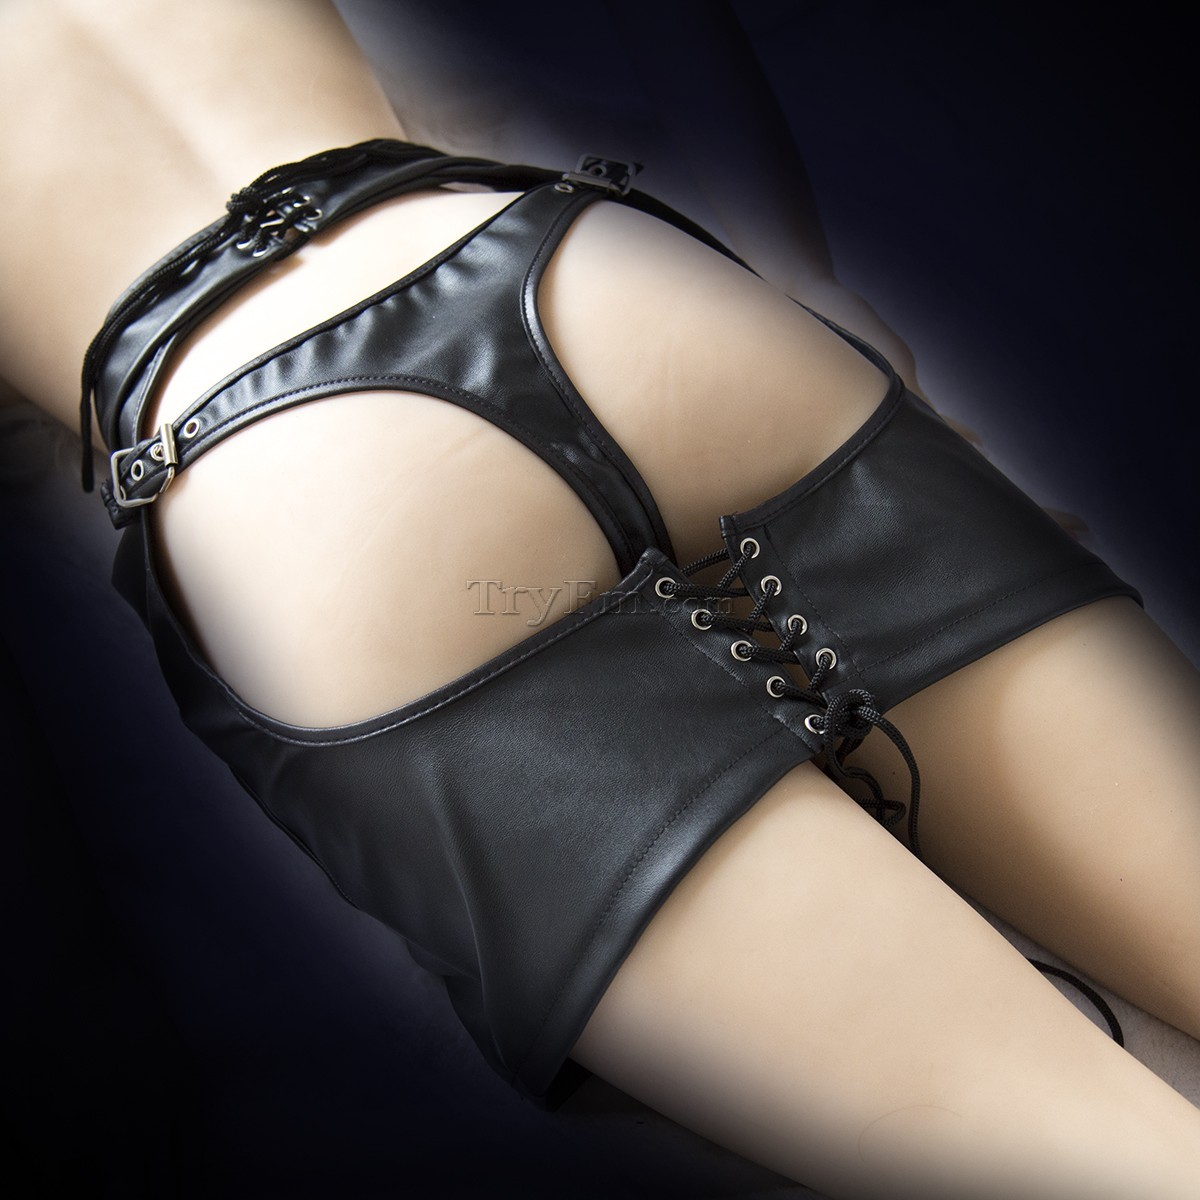 5-Crotchless-Panty-for-Housewives-4.jpg